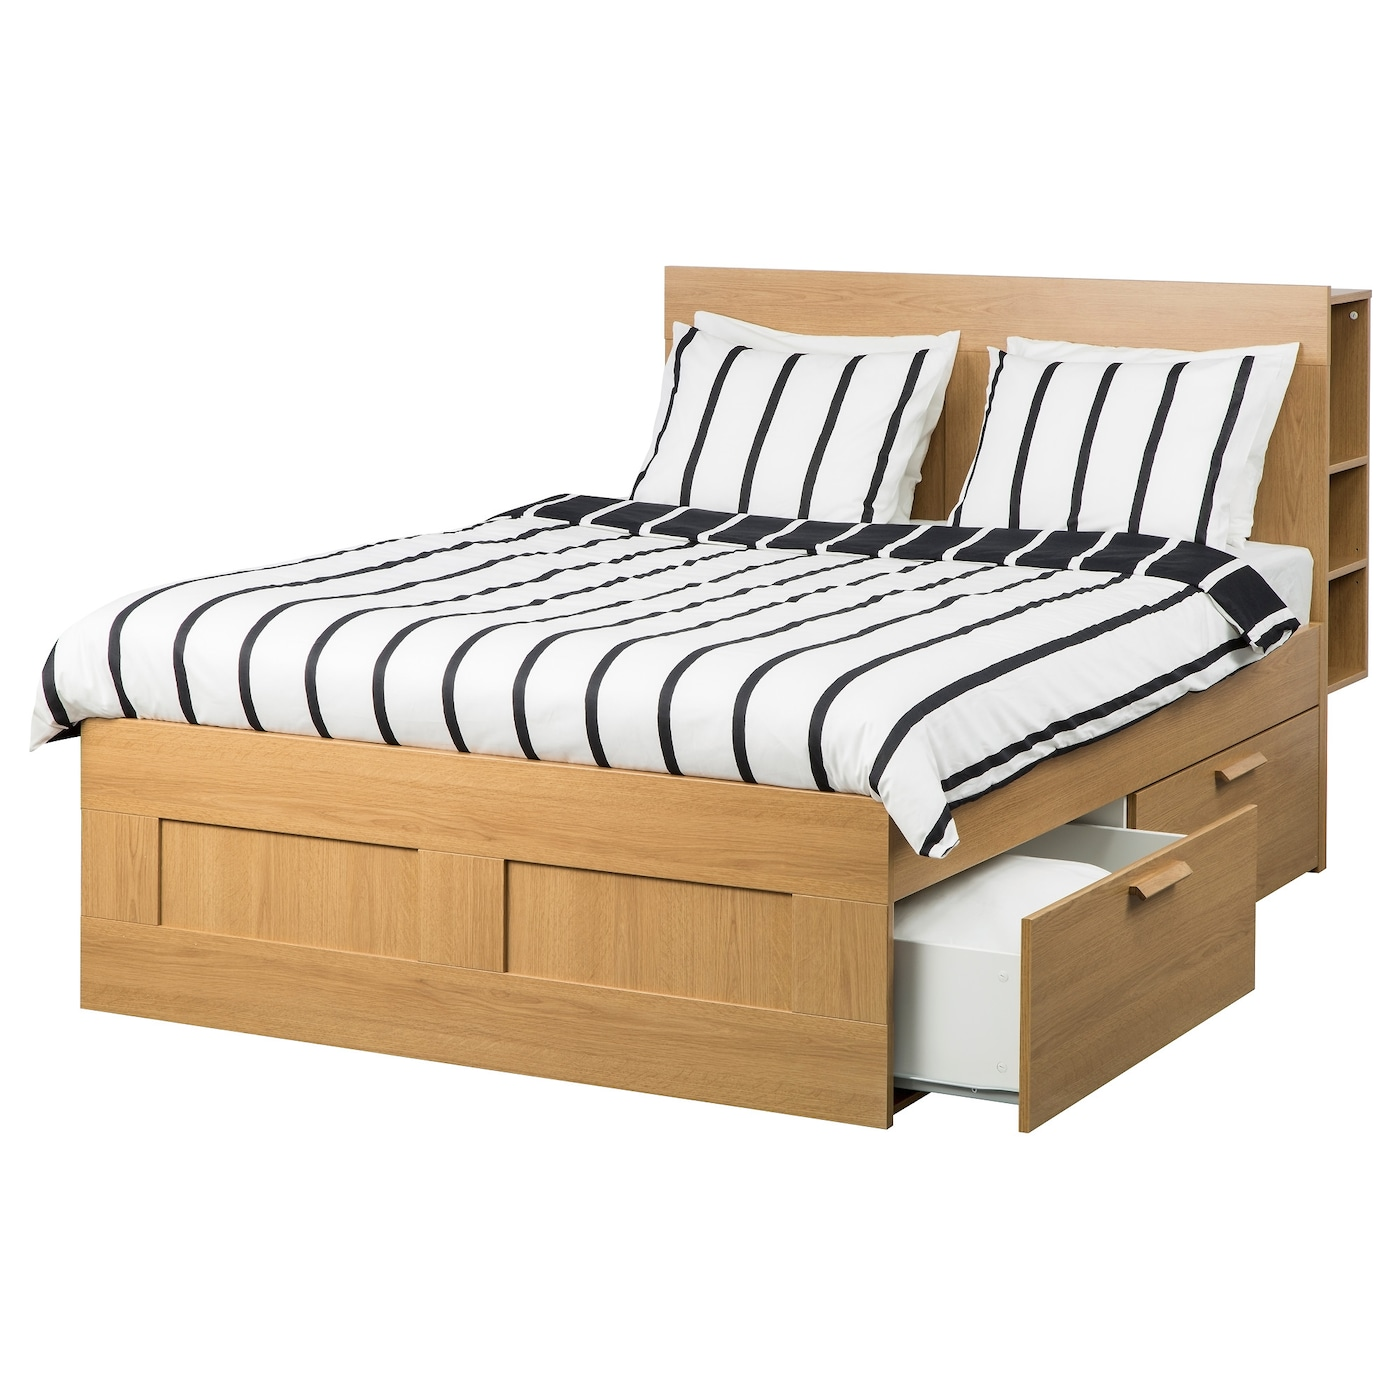 Brimnes Bed Frame W Storage And Headboard Oak Effect Lur Y Standard Double Ikea